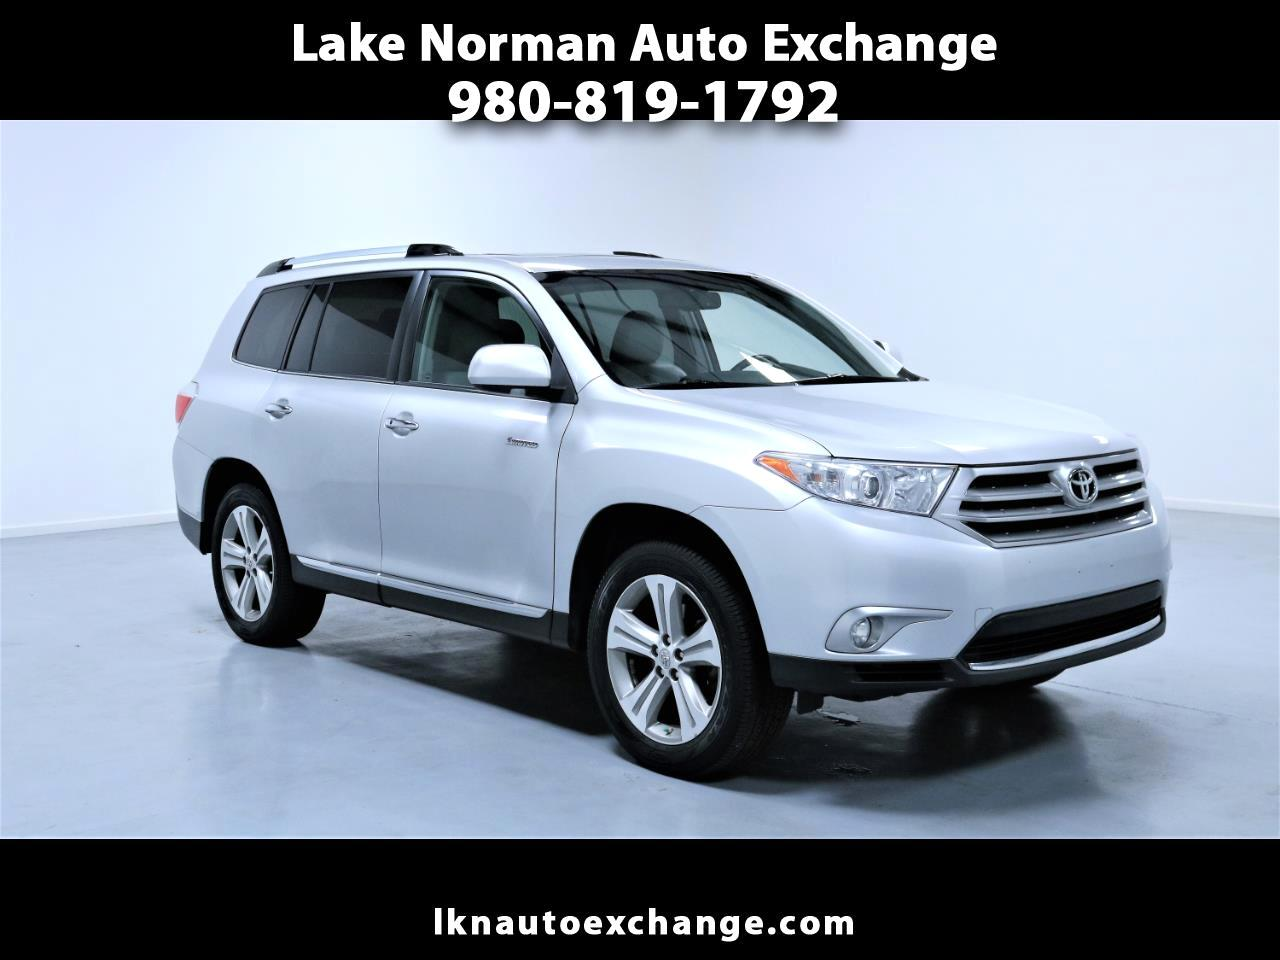 2012 Toyota Highlander 4dr V6 4WD Limited w/3rd Row (Natl)